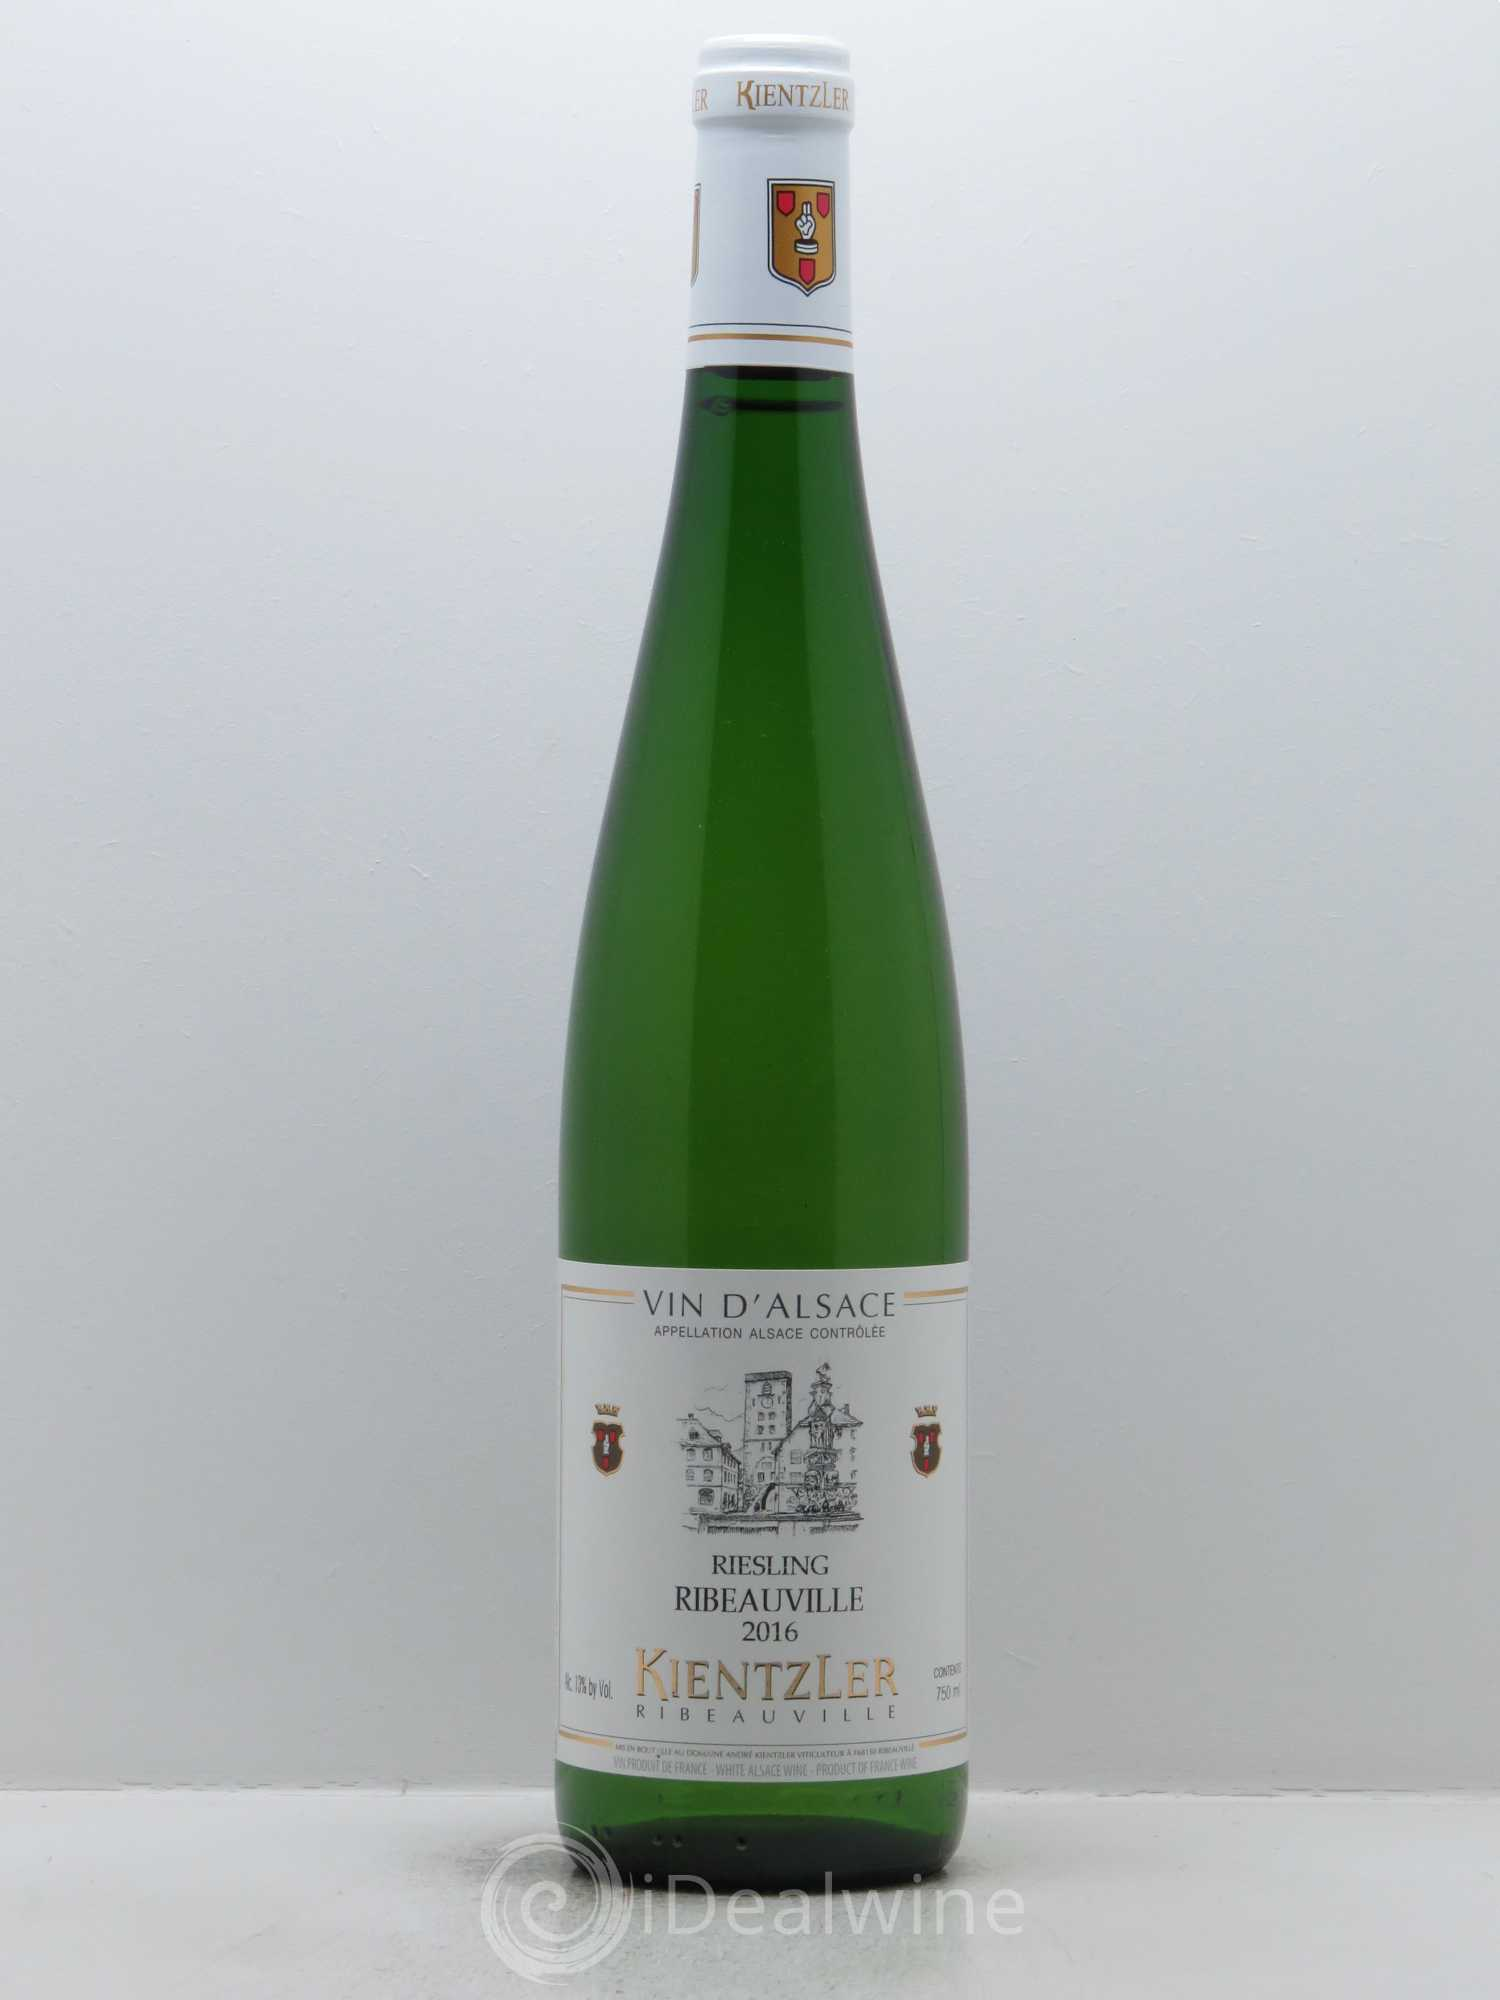 Riesling Ribeauvillé Kientzler  2016 - Lot of 1 Bottle